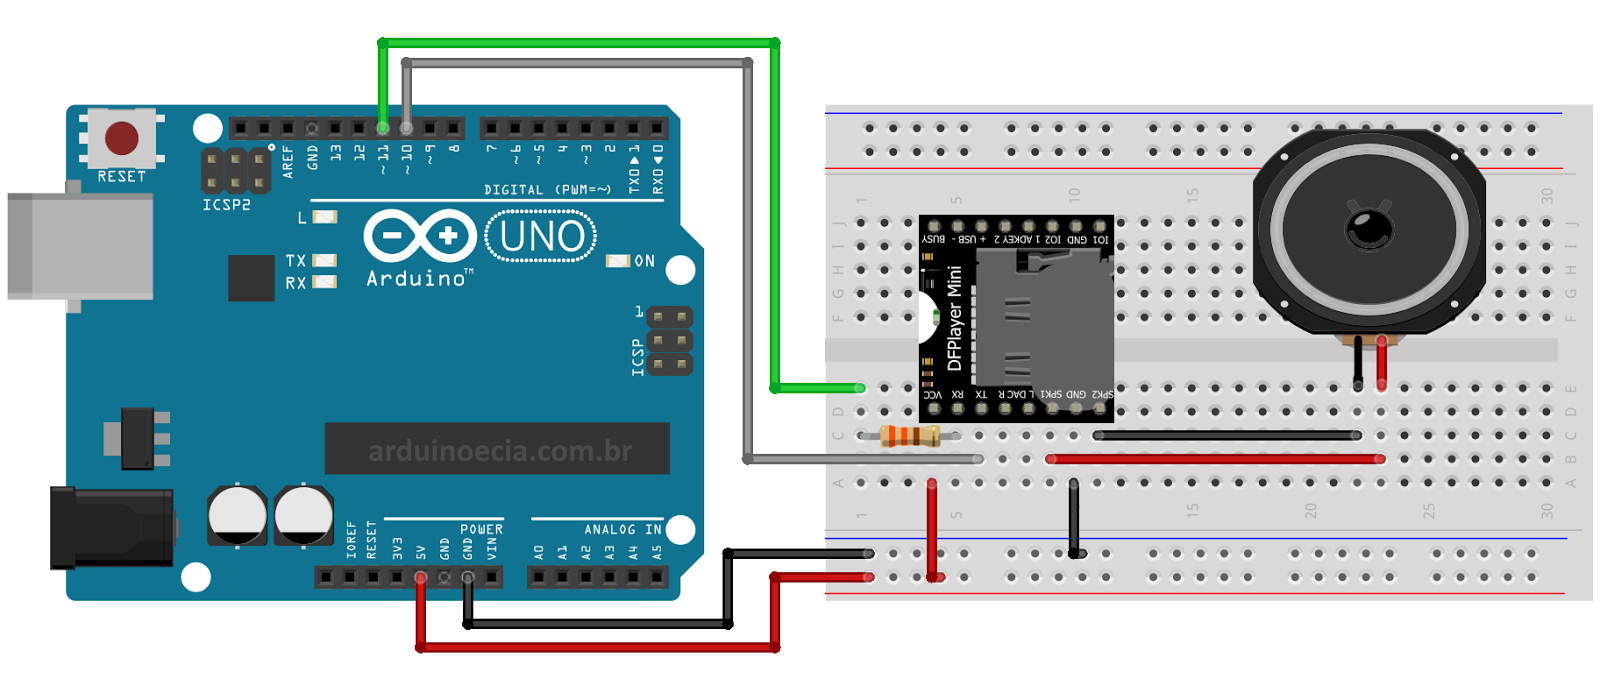 Como Usar O Mdulo Mp3 Dfplayer Mini Arduino Microcontrollers Circuit Picbasic Source Code Proteus Isis Simulation Schematic 433mhz Cnc Projects